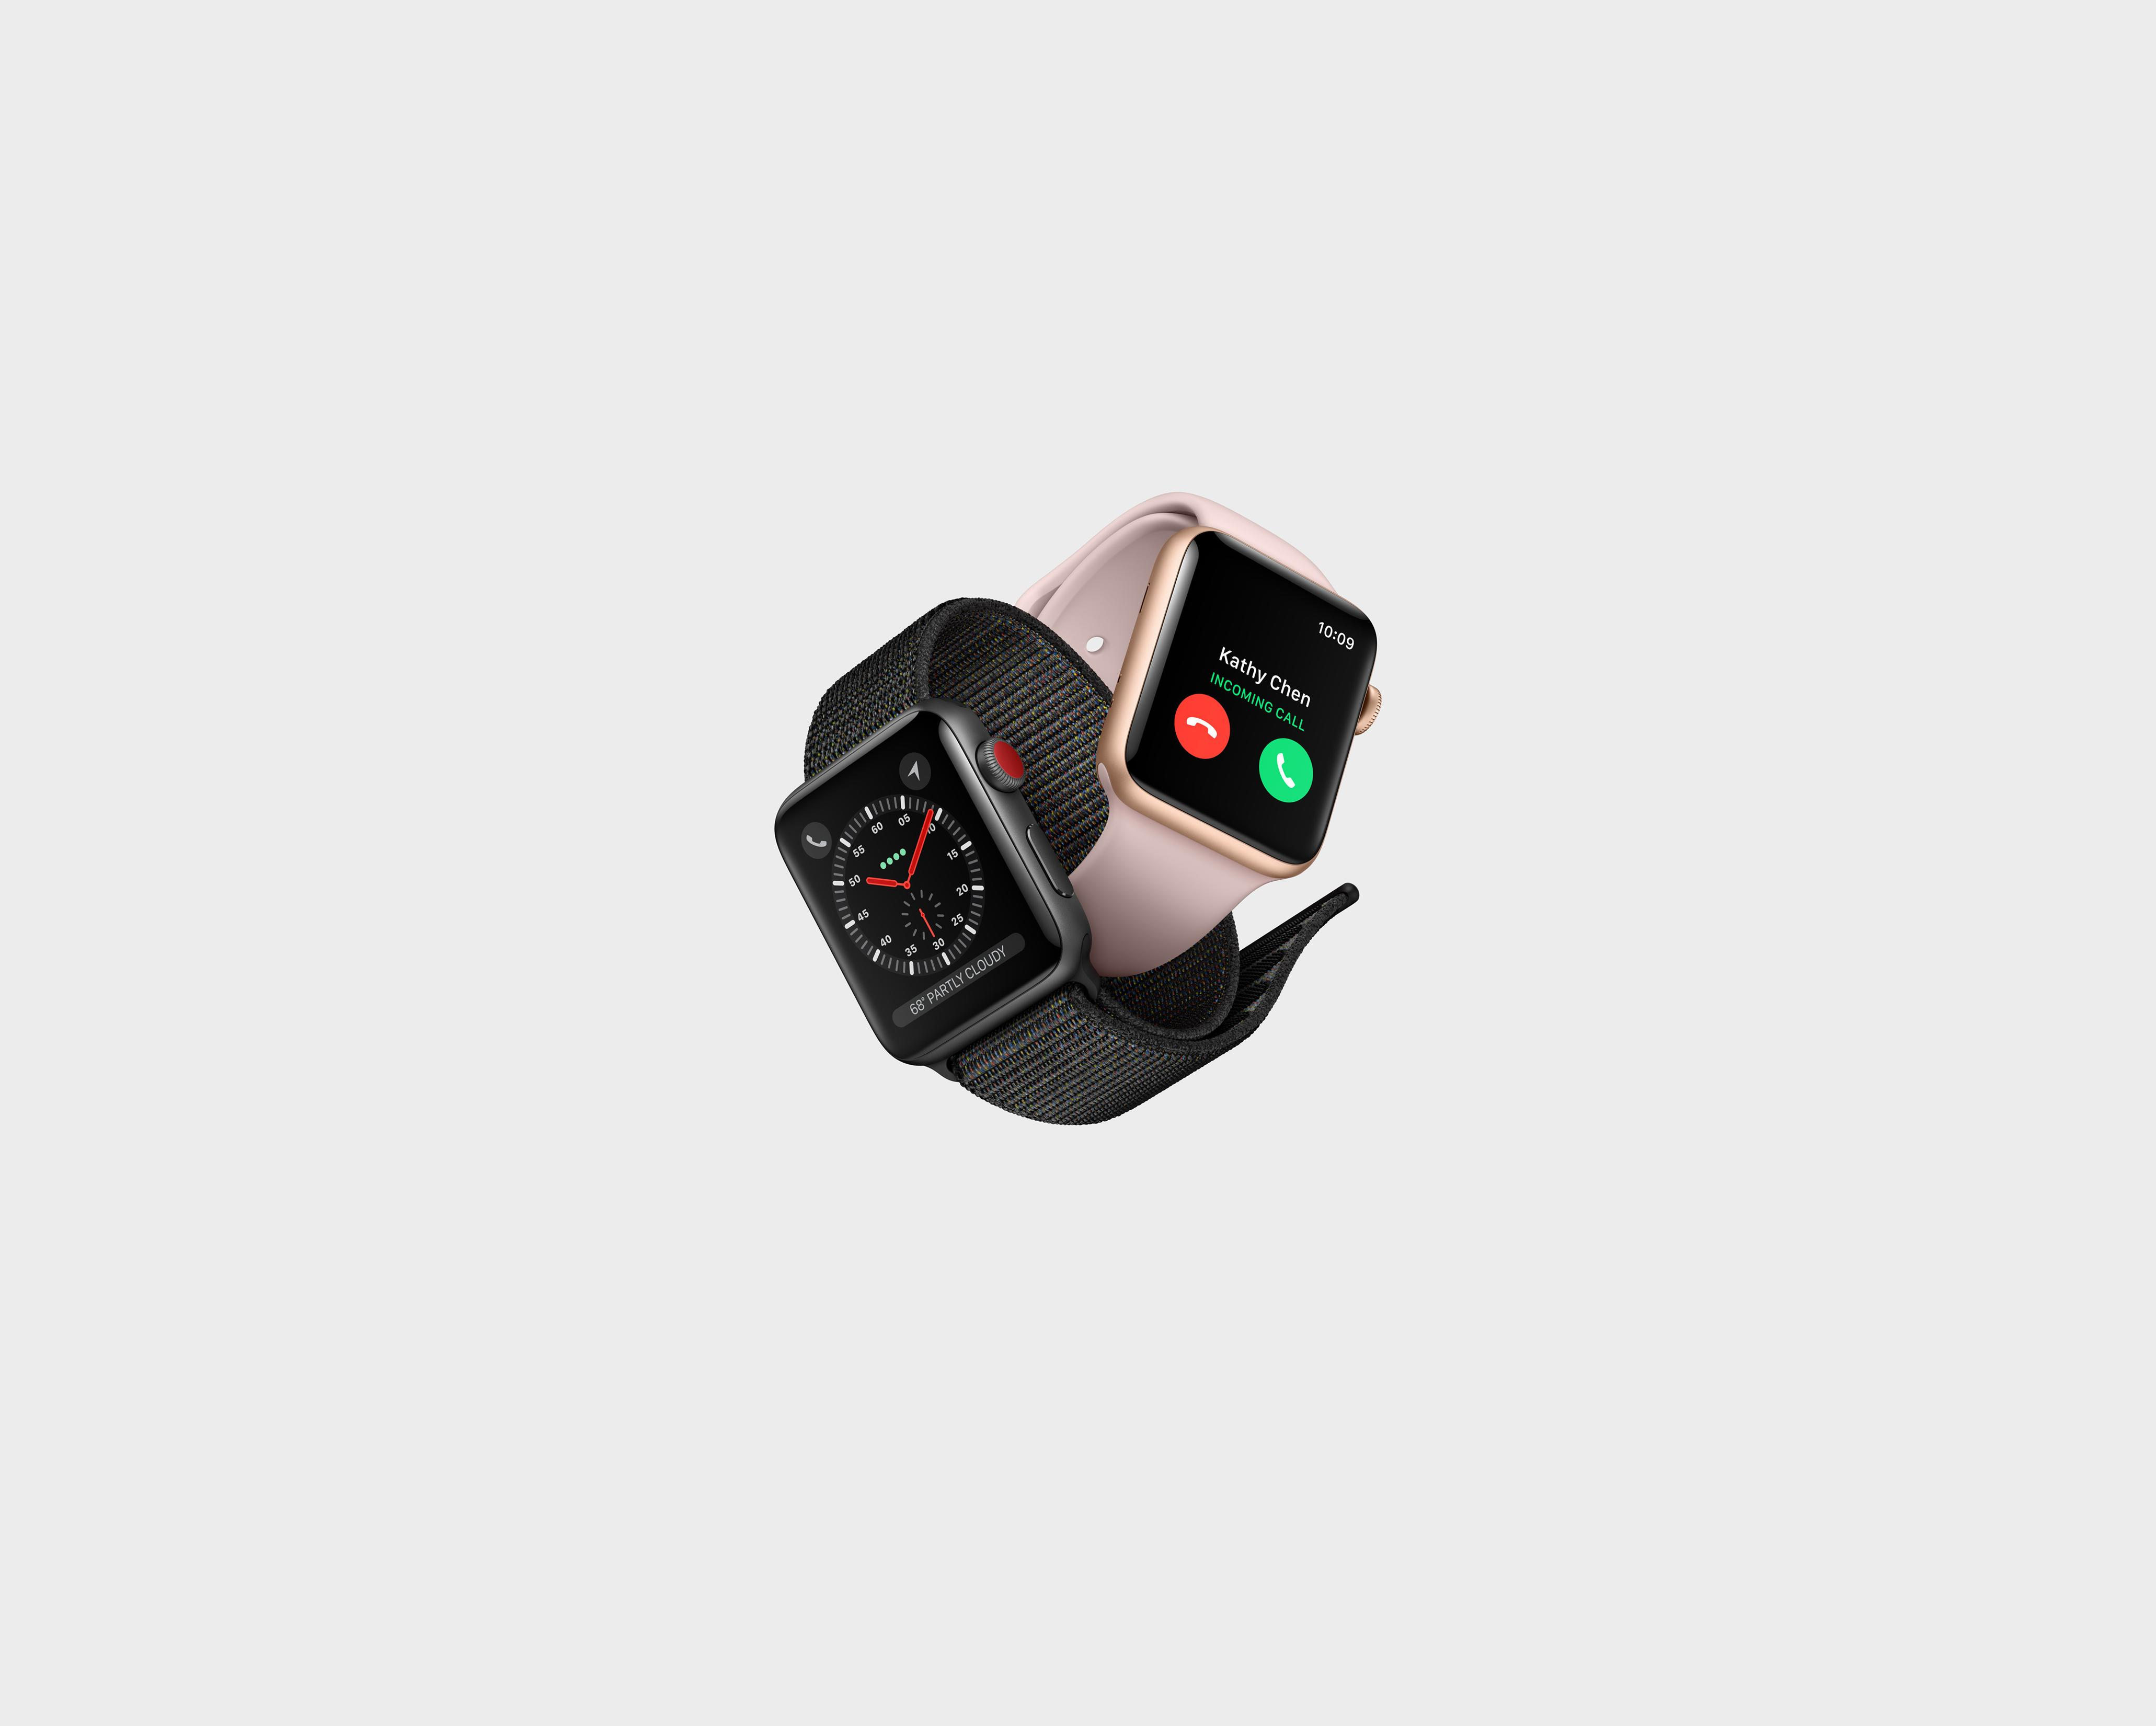 7954e67ad Is the Apple Watch Series 3 Worth Buying  Our Fitness Editor Weighs In